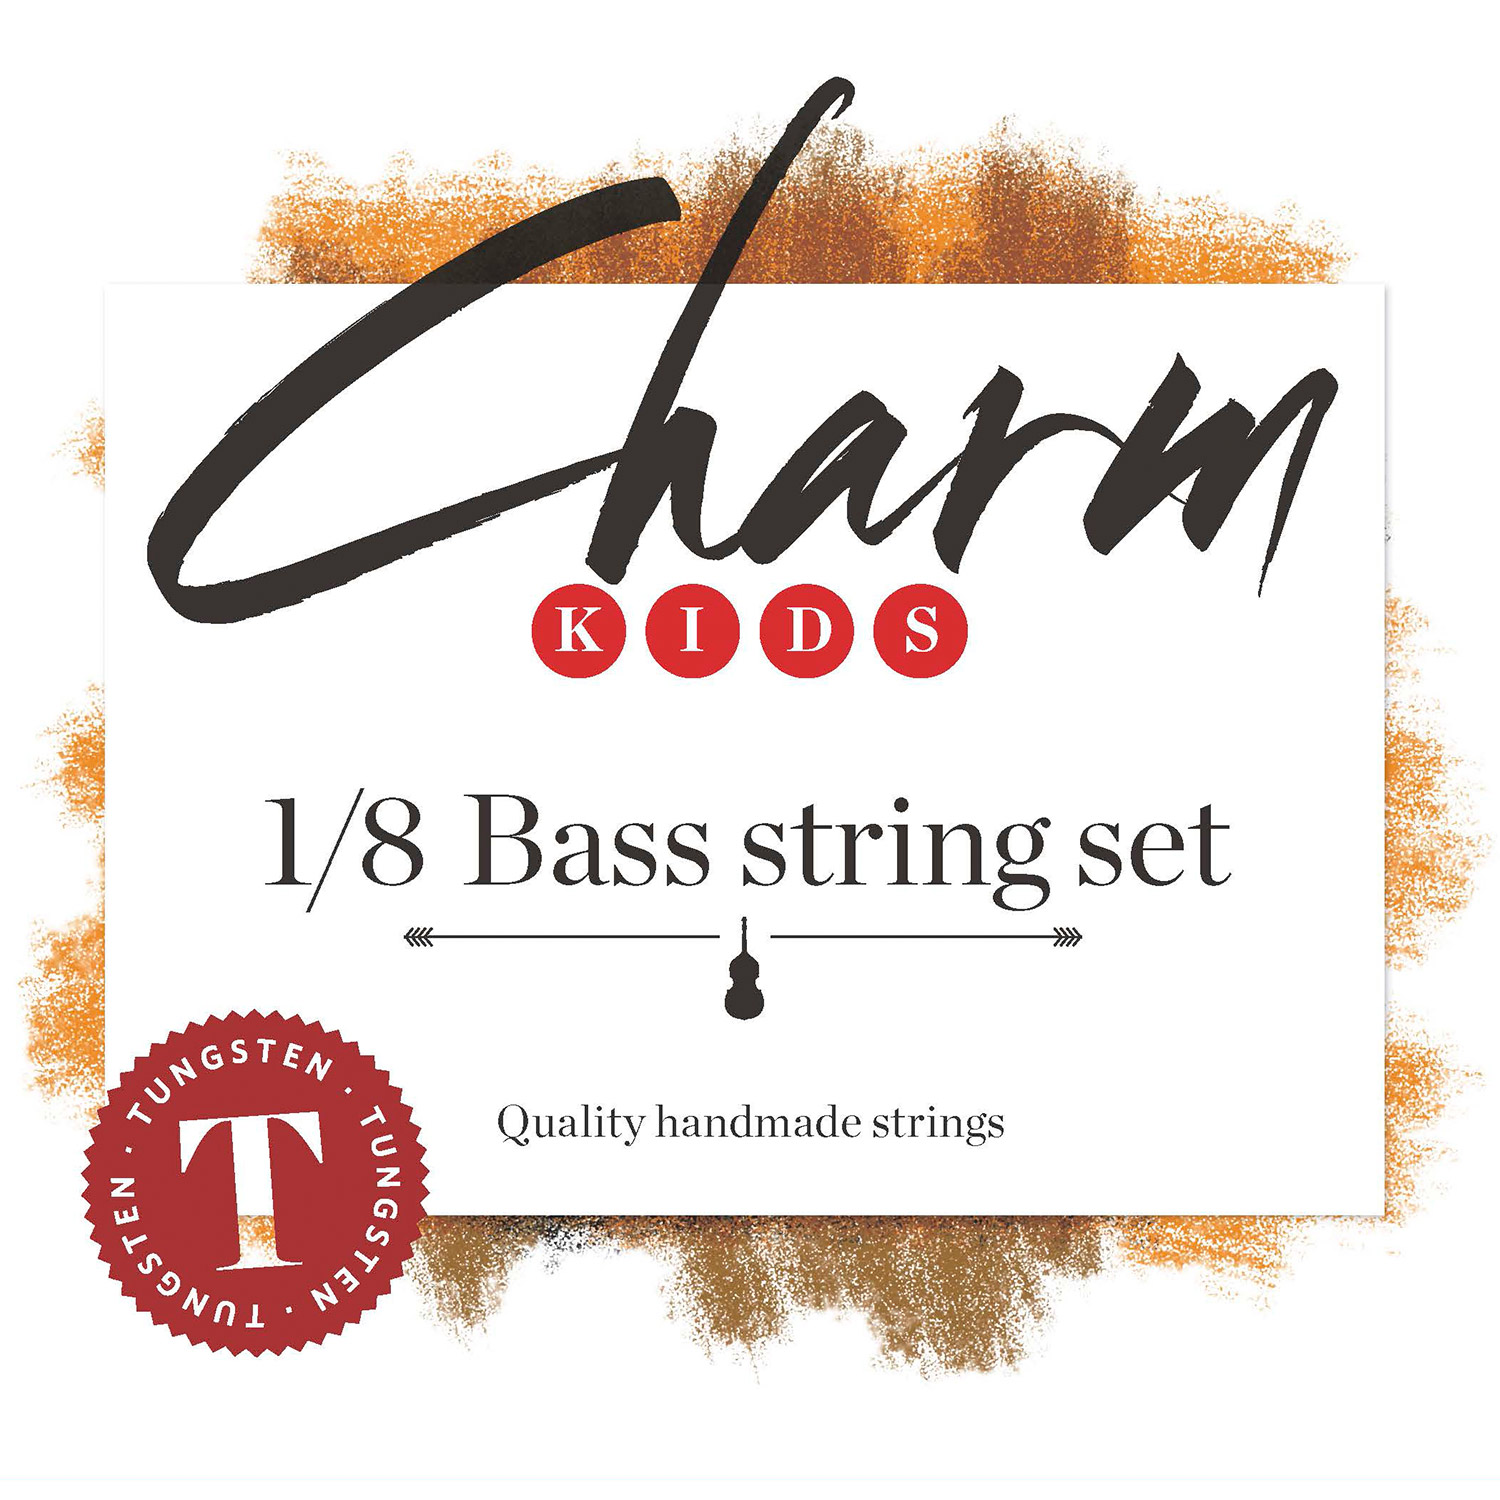 Charm Kids Bass Tungsten 1/8